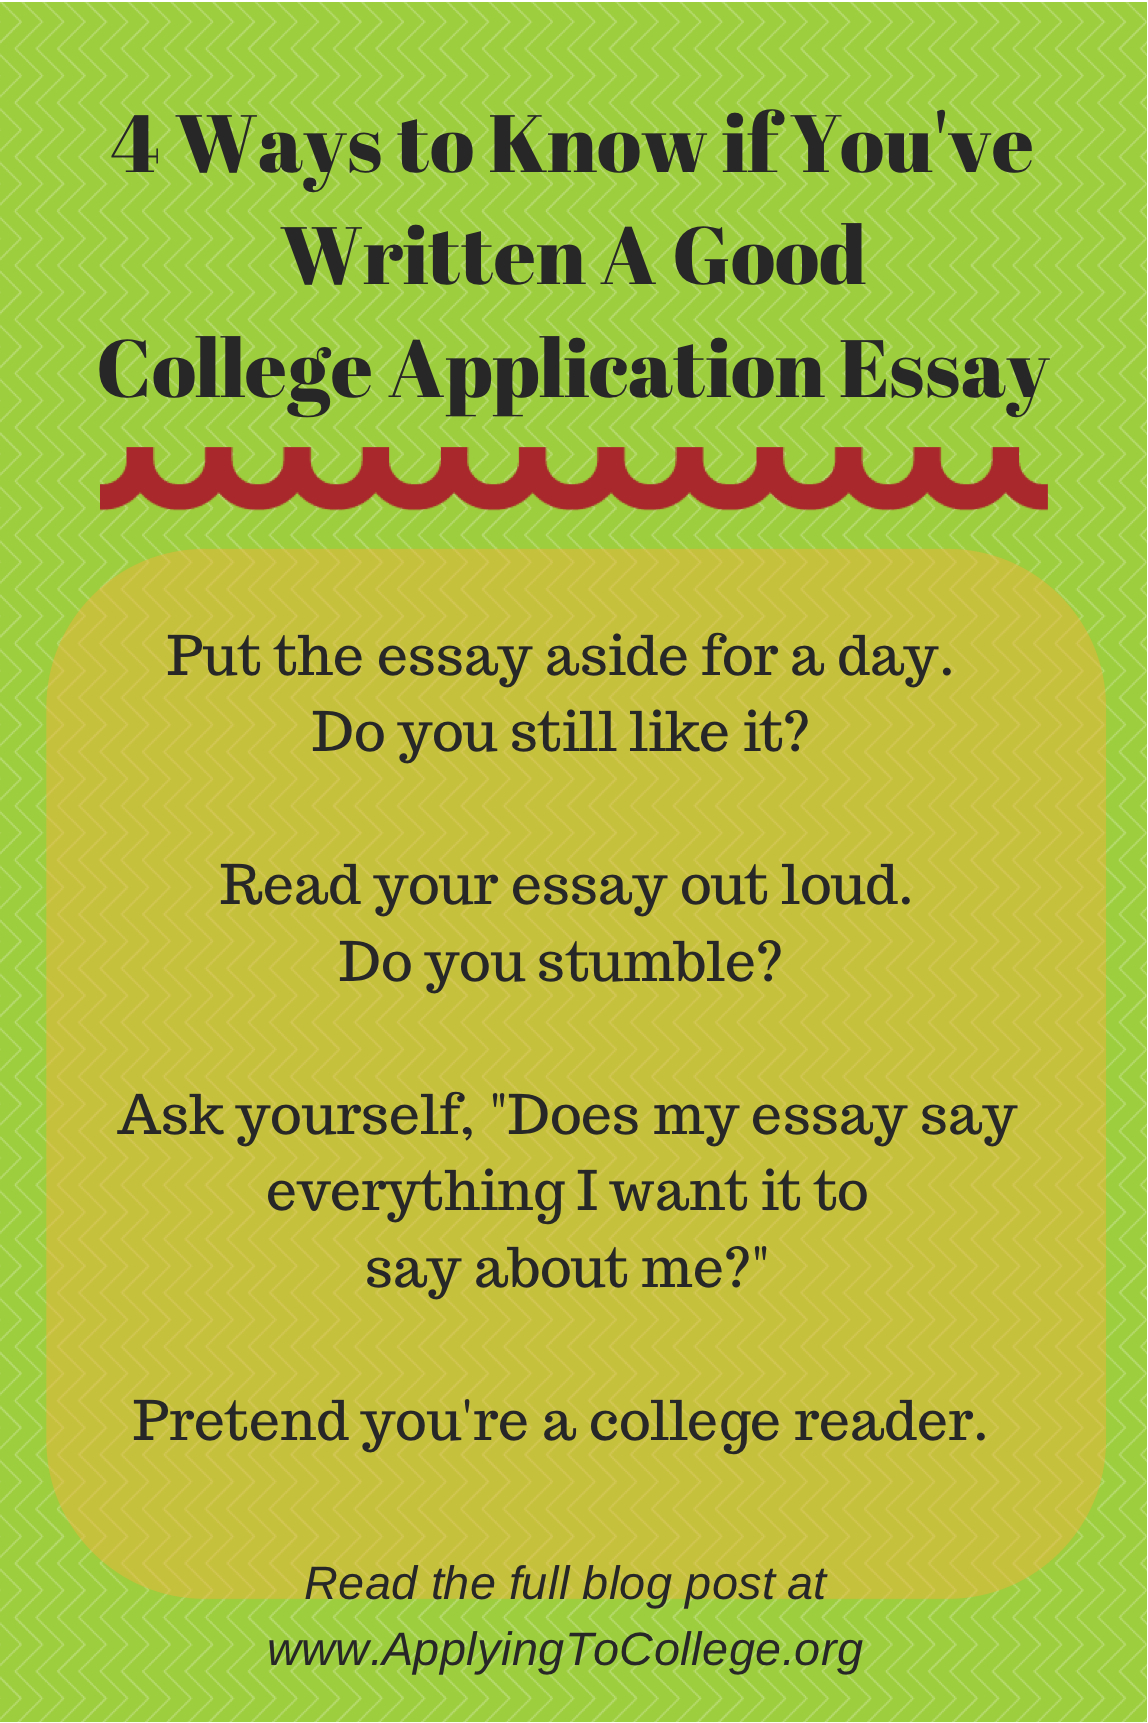 awesome college application essays Working with alicia on my common application essay was an extremely great and beneficial experience her guidance was extremely helpful in thinking of the right idea for the essay and in expanding on the topic to best answer the question.